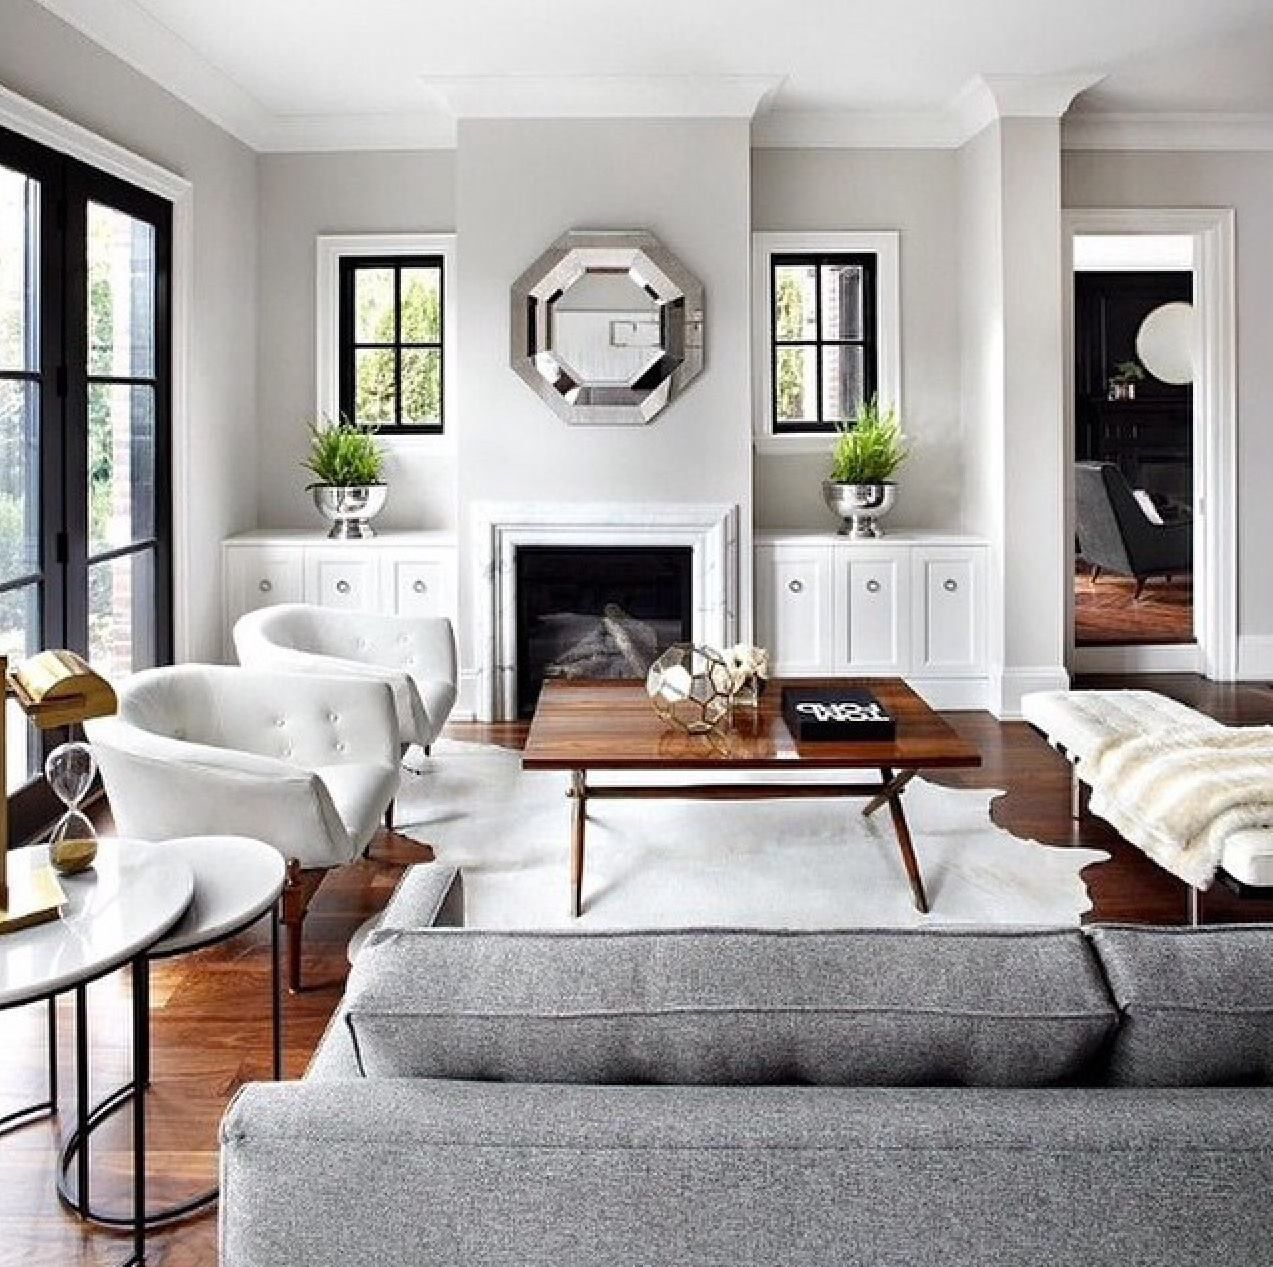 Marvelous Pin By Jack Rick On Living Room Ideas Living Room Grey Gamerscity Chair Design For Home Gamerscityorg